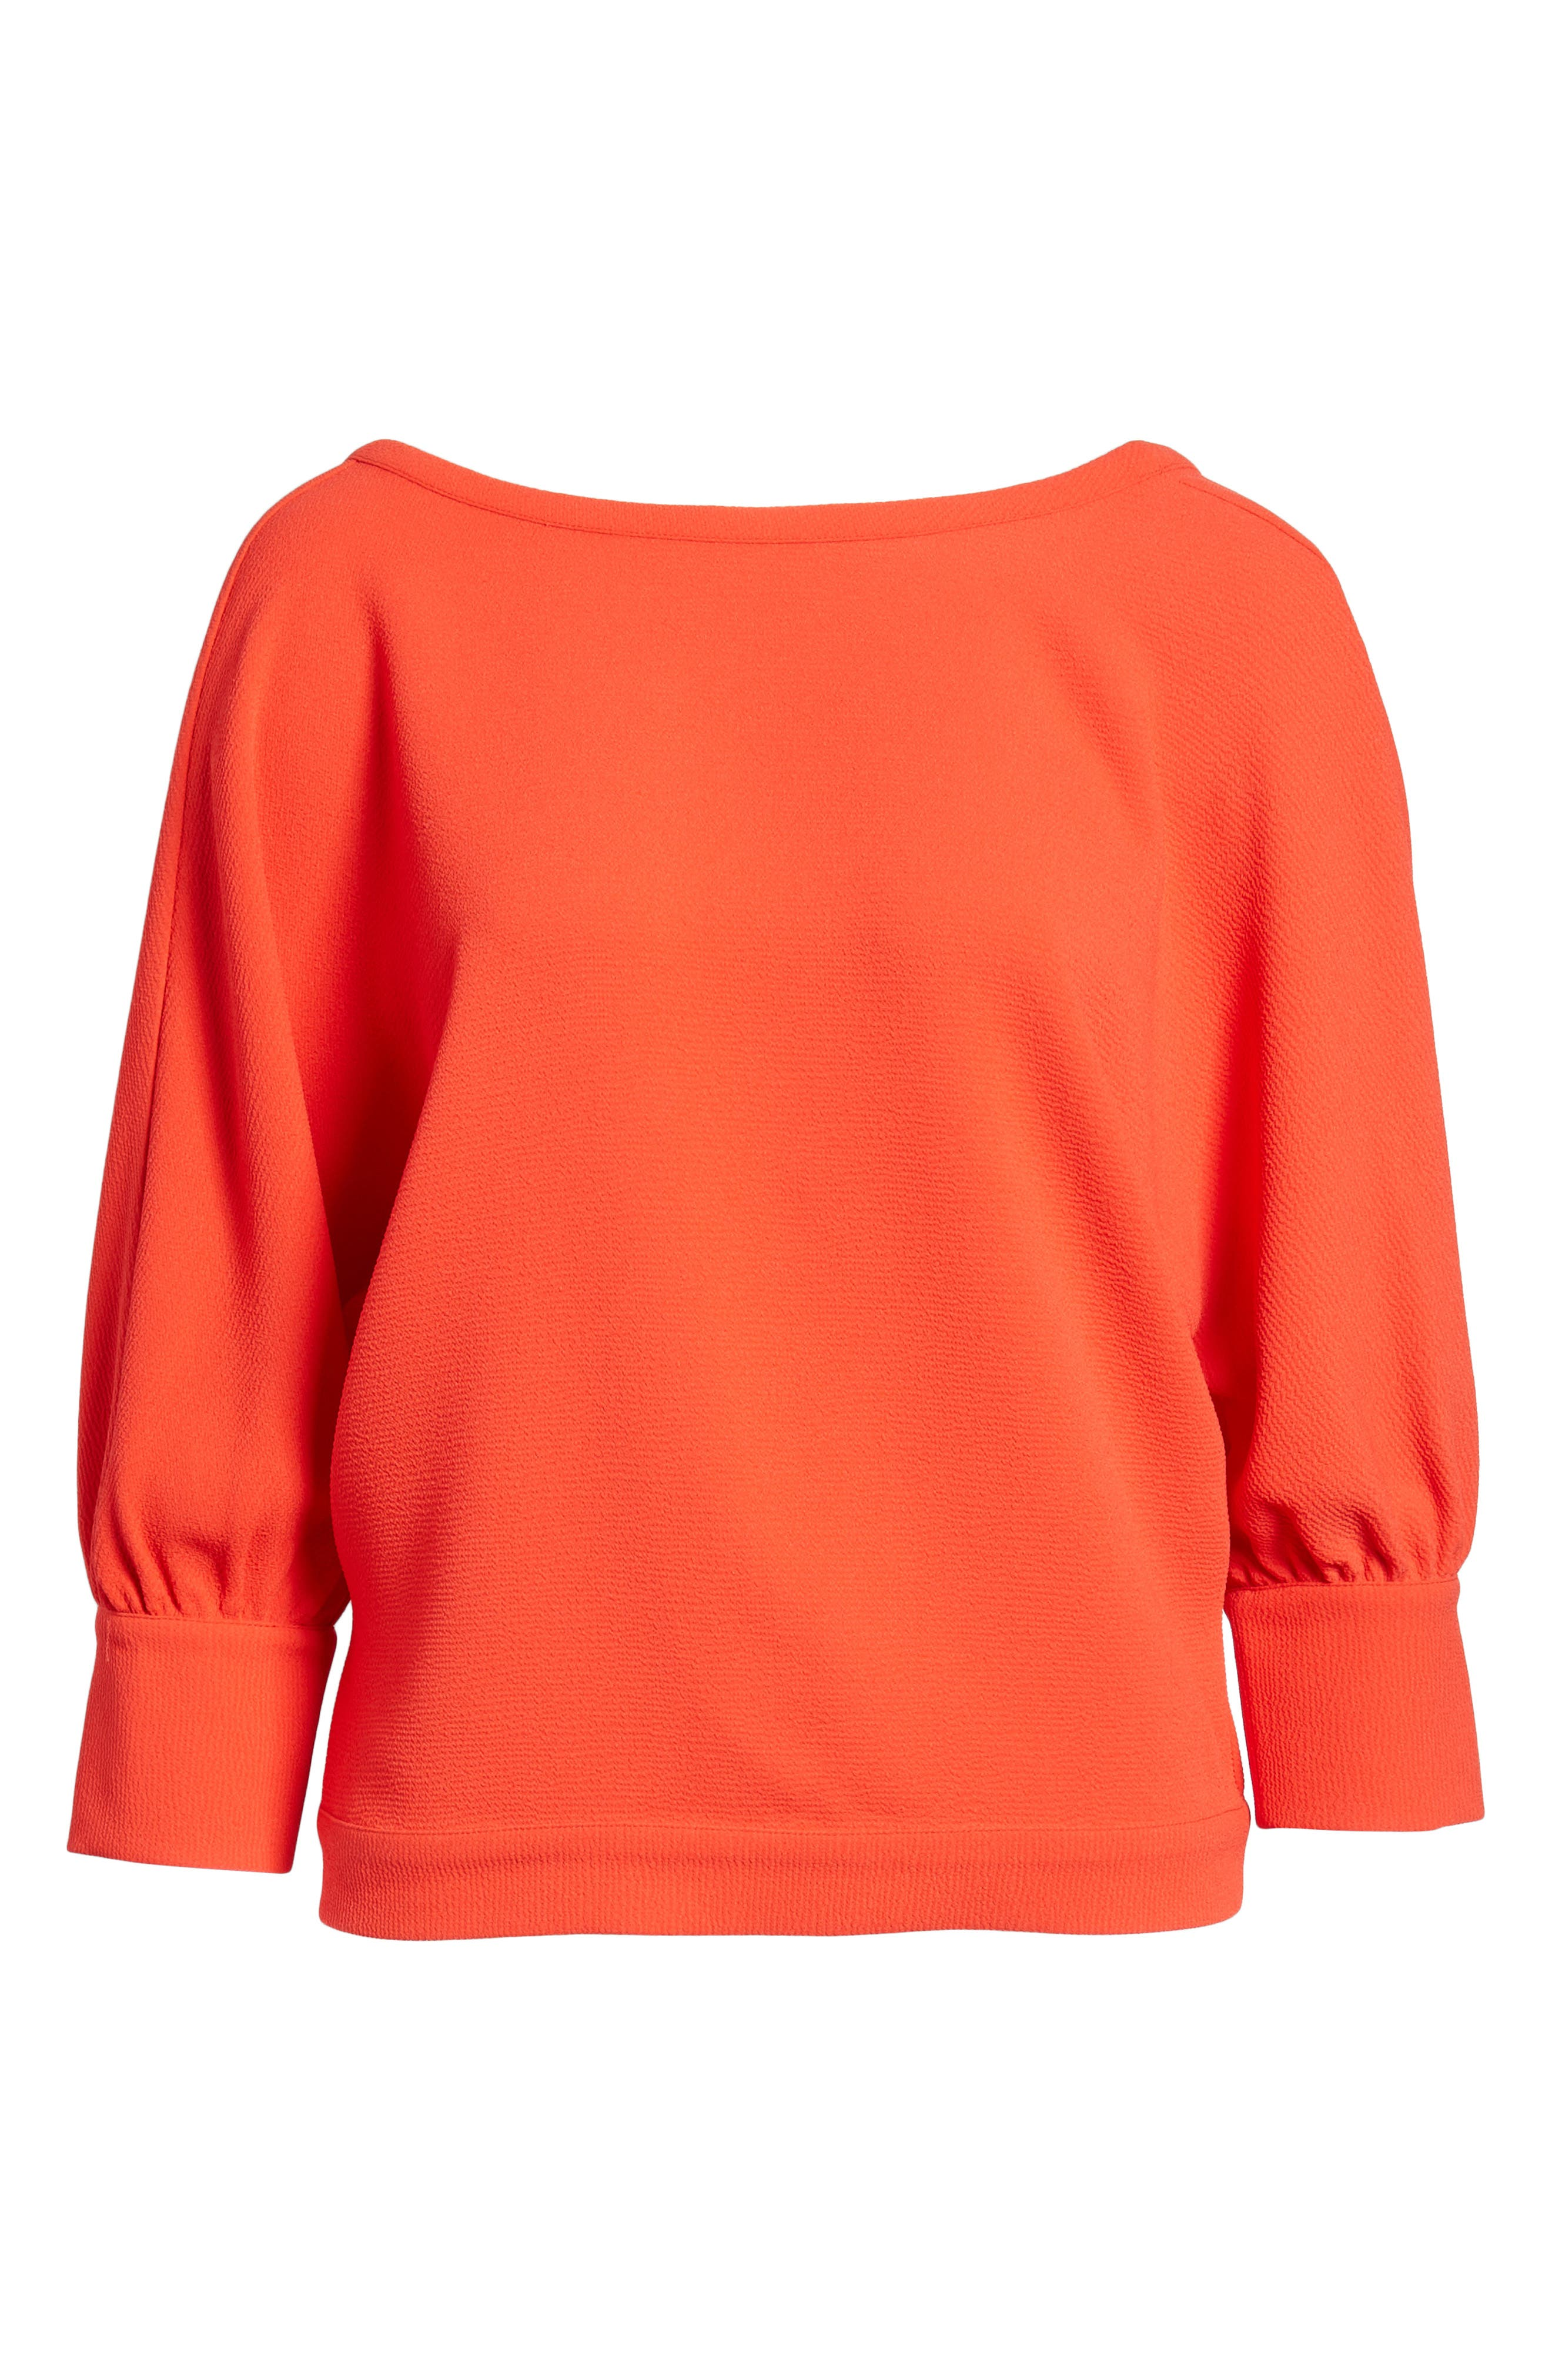 Dolman Sleeve Top,                             Alternate thumbnail 7, color,                             Red Poppy